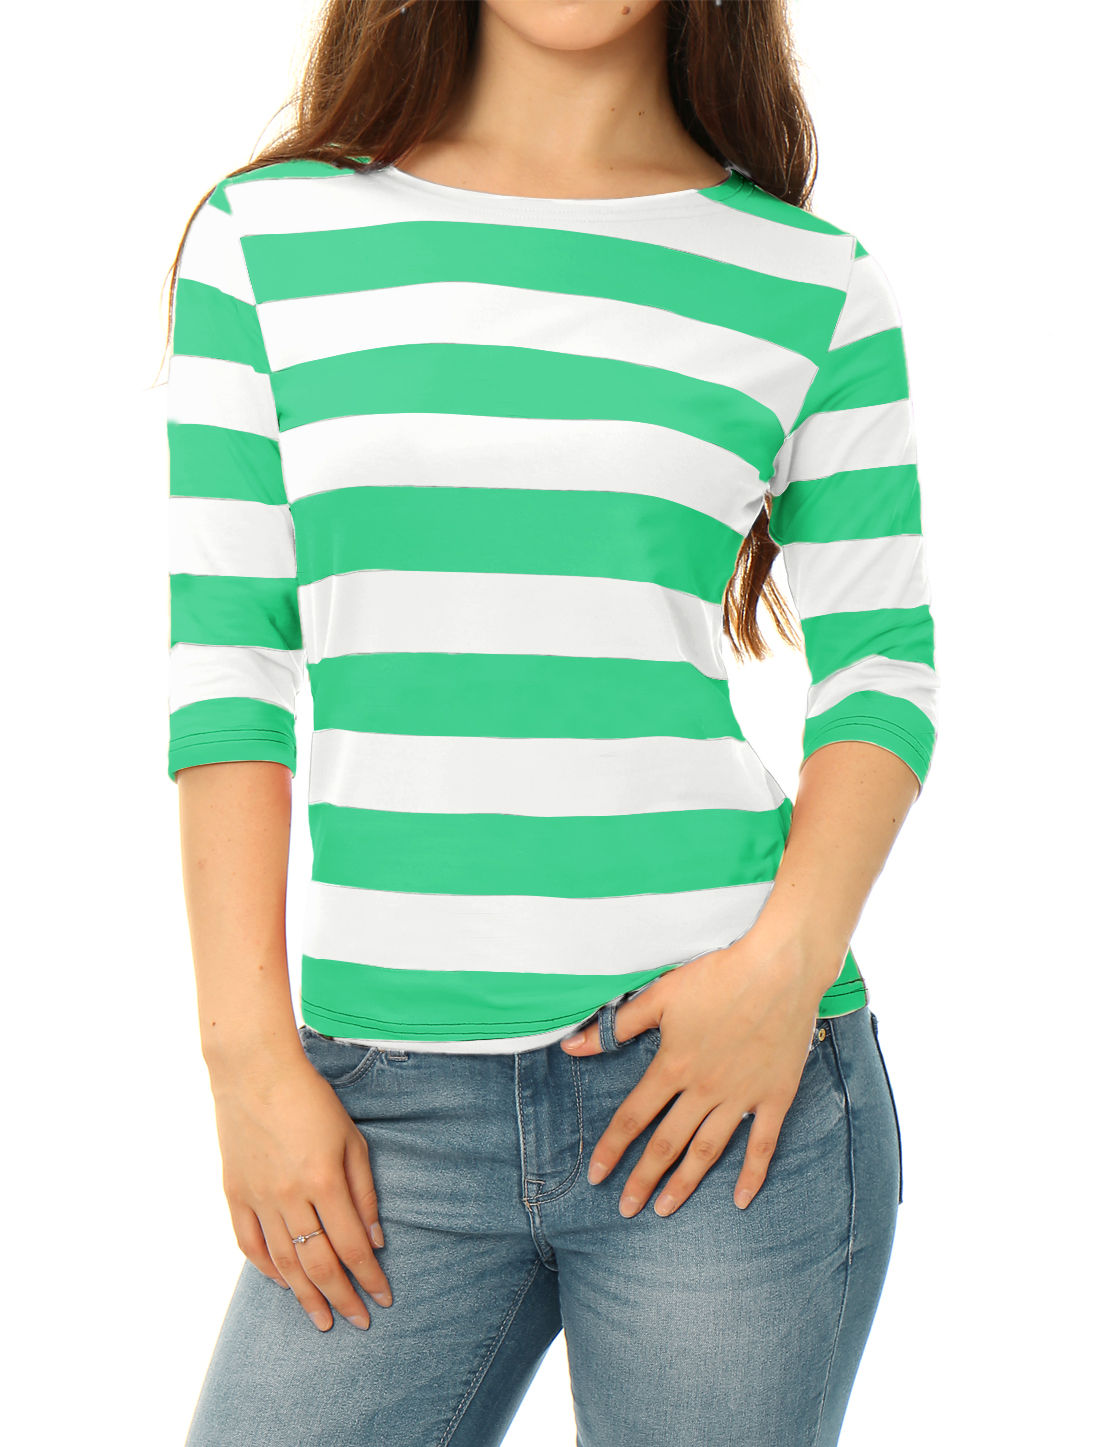 Women Elbow Sleeves Boat Neck Slim Fit Striped Tee Light Green S